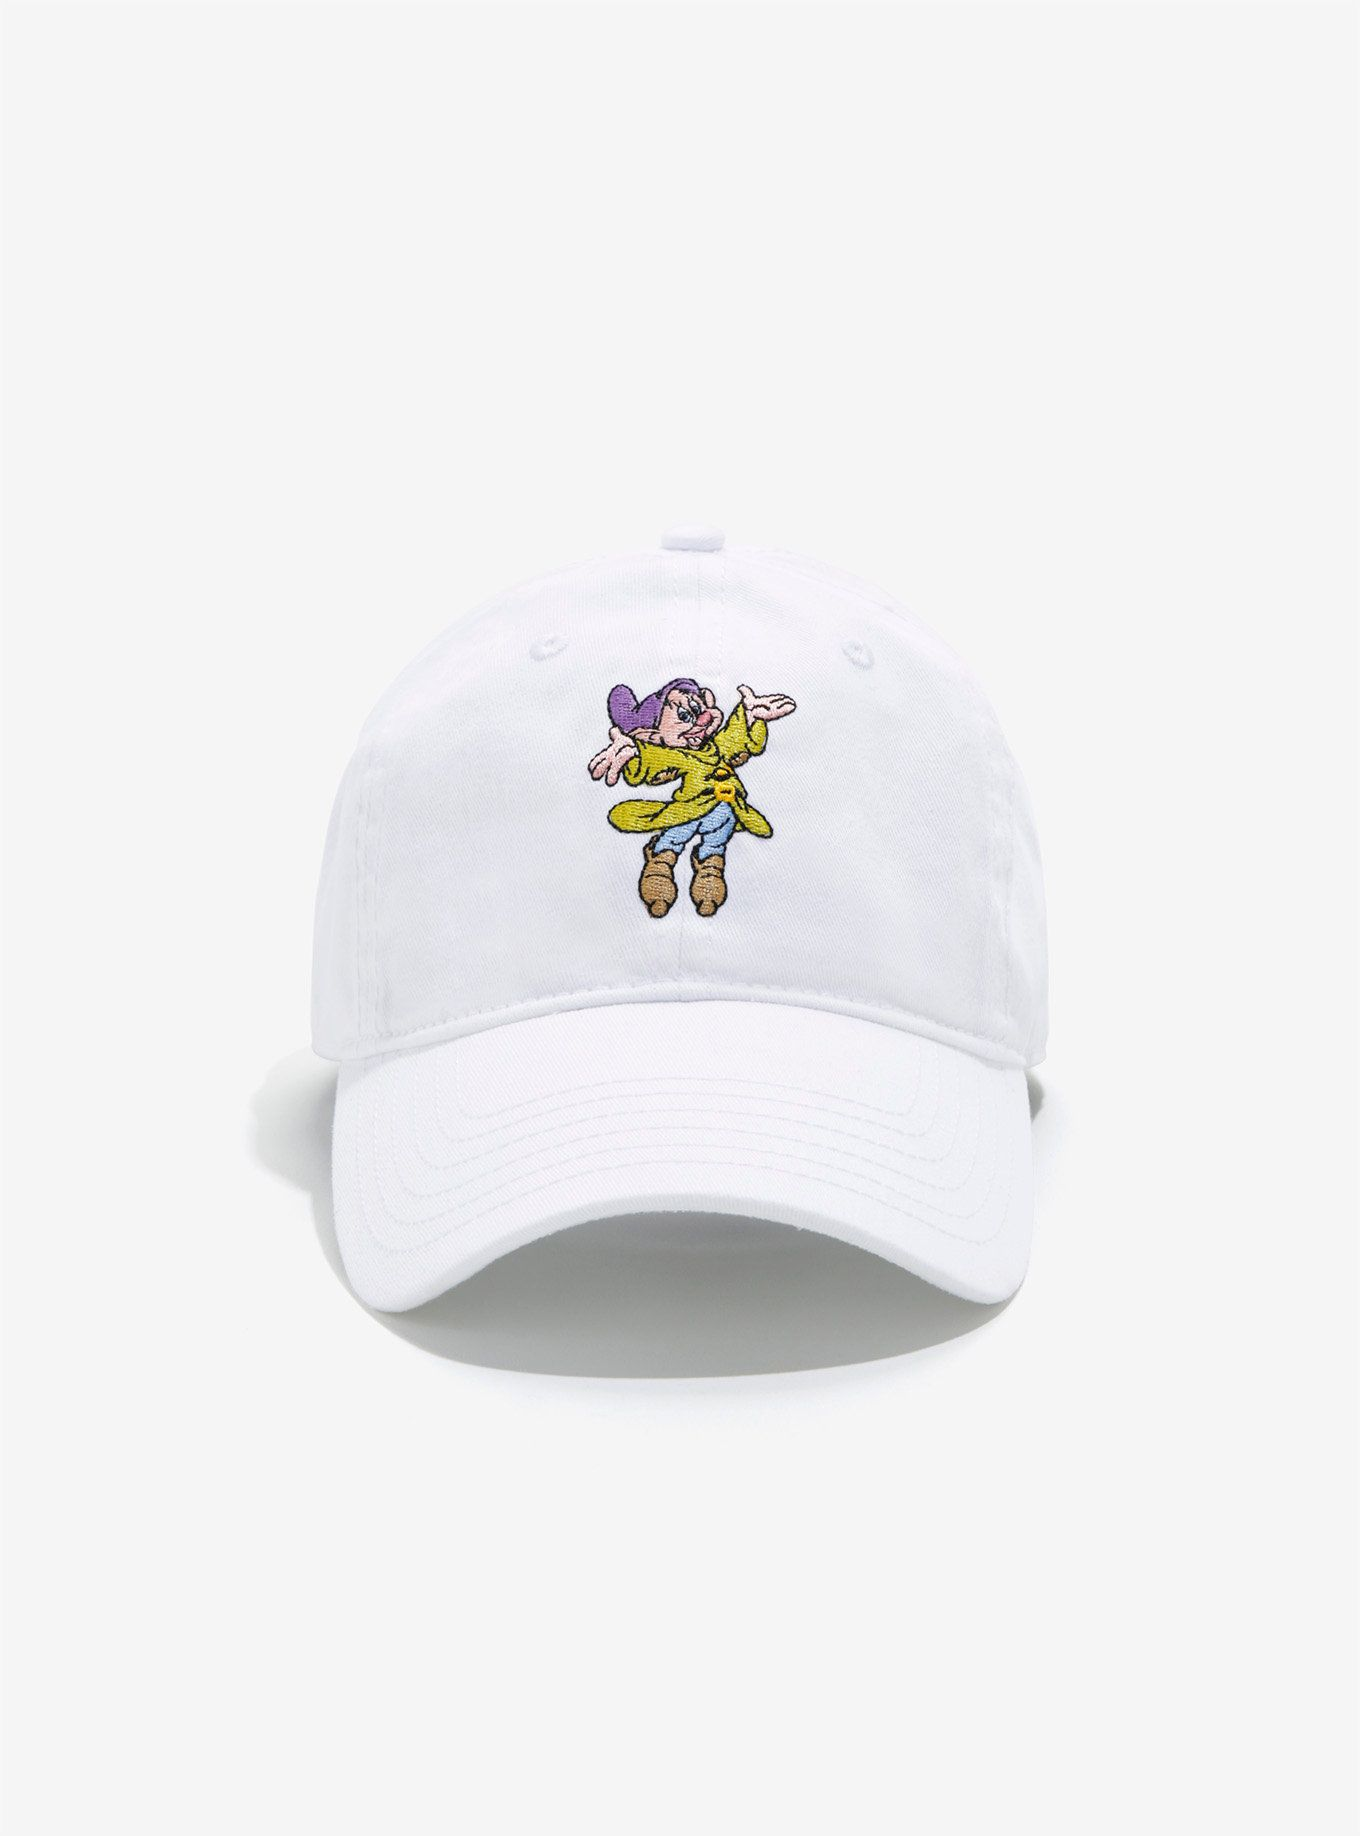 67099d51c1a Disney Snow White And The Seven Dwarfs Dopey Dad Hat